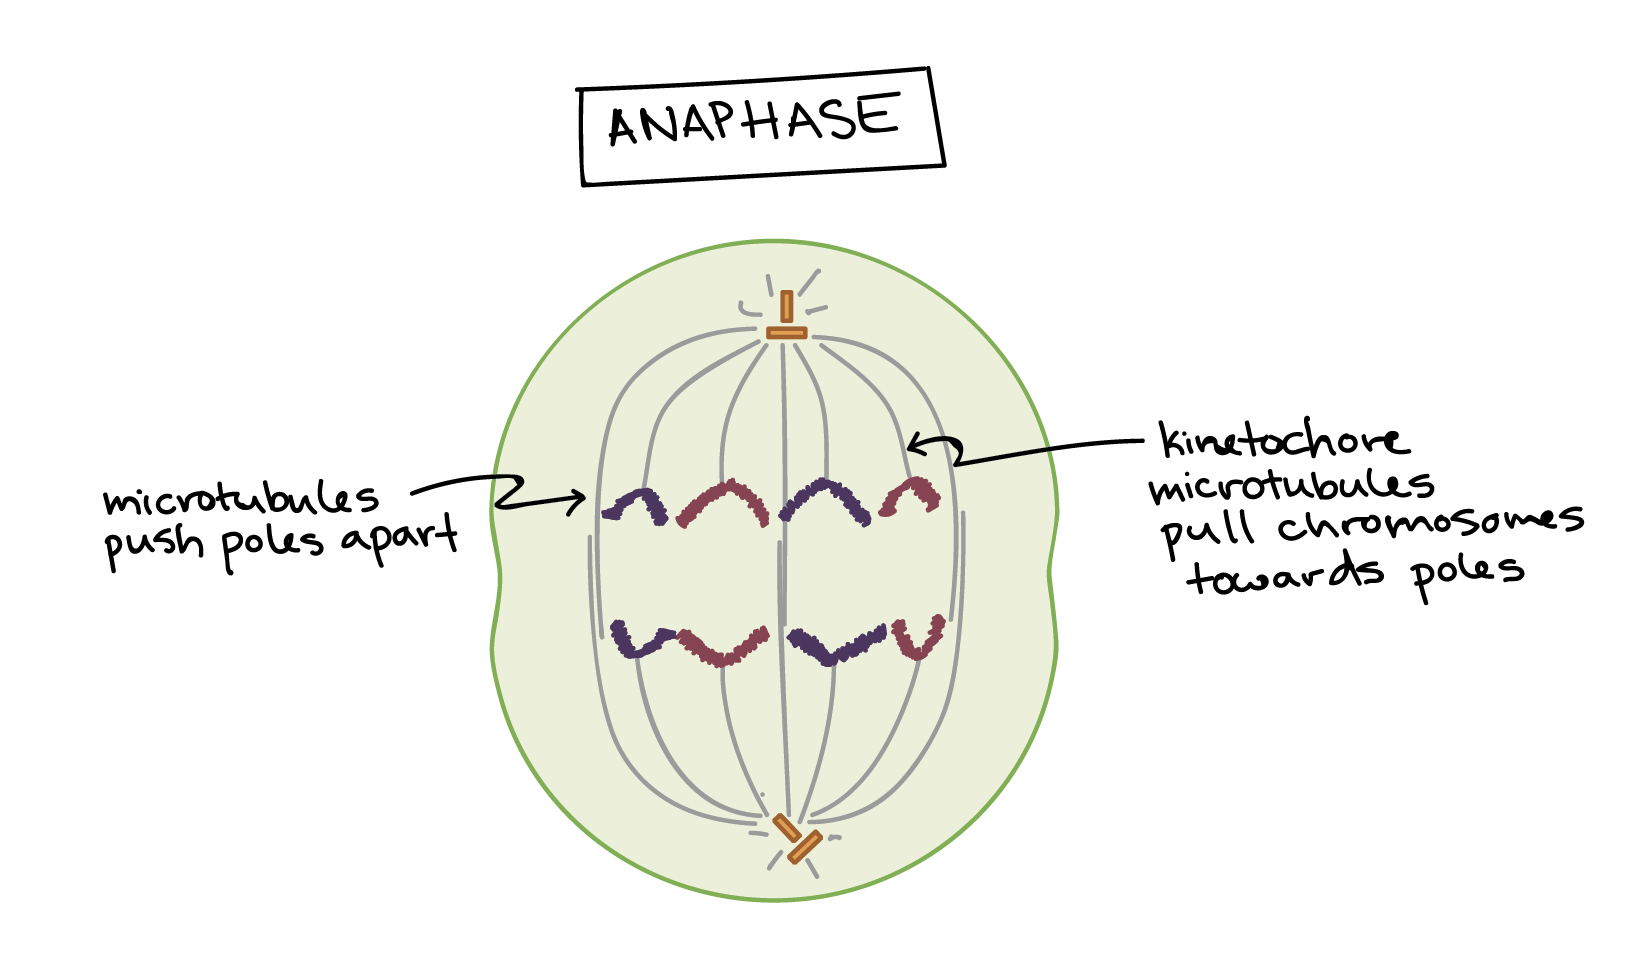 phase of mitosis in which sister chromatids separate